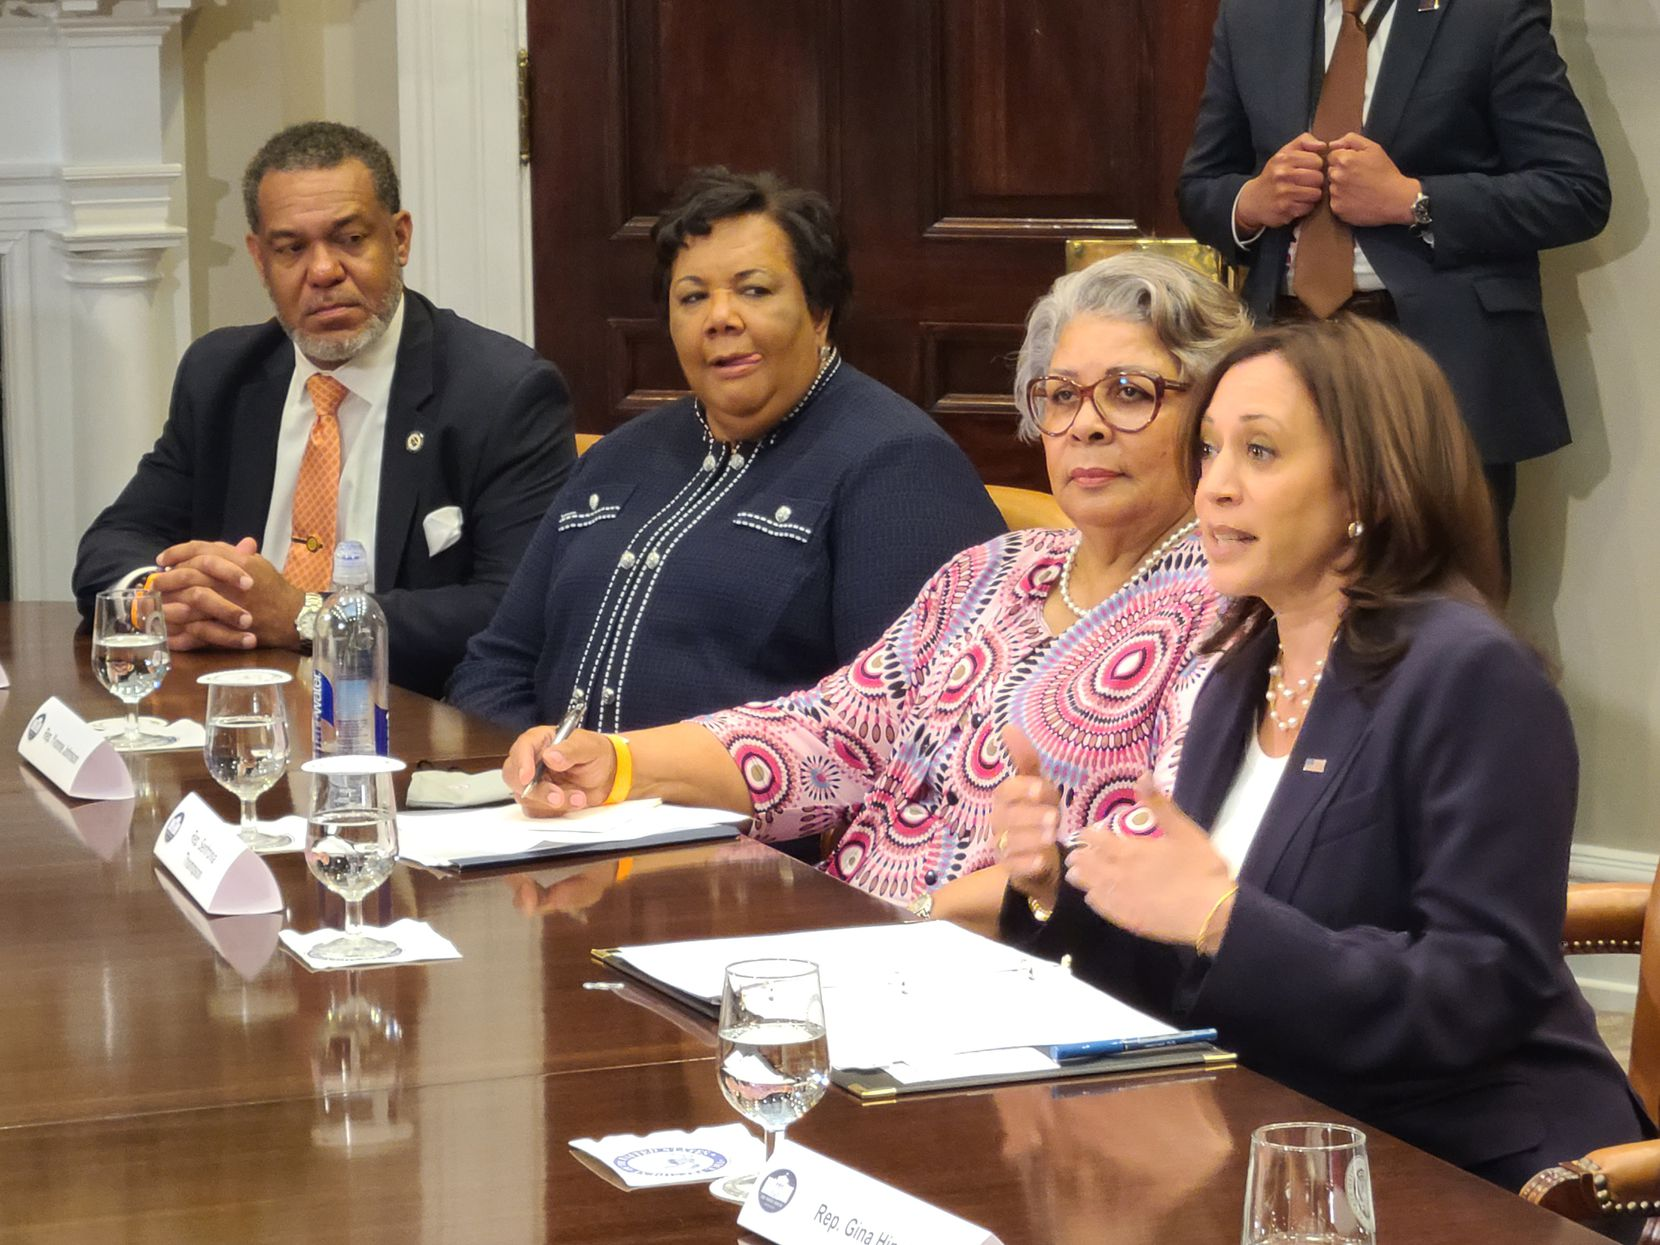 Vice President Kamala Harris meets with Texas state lawmakers at the White House on June 16, 2021, to promote federal voting rights legislation.